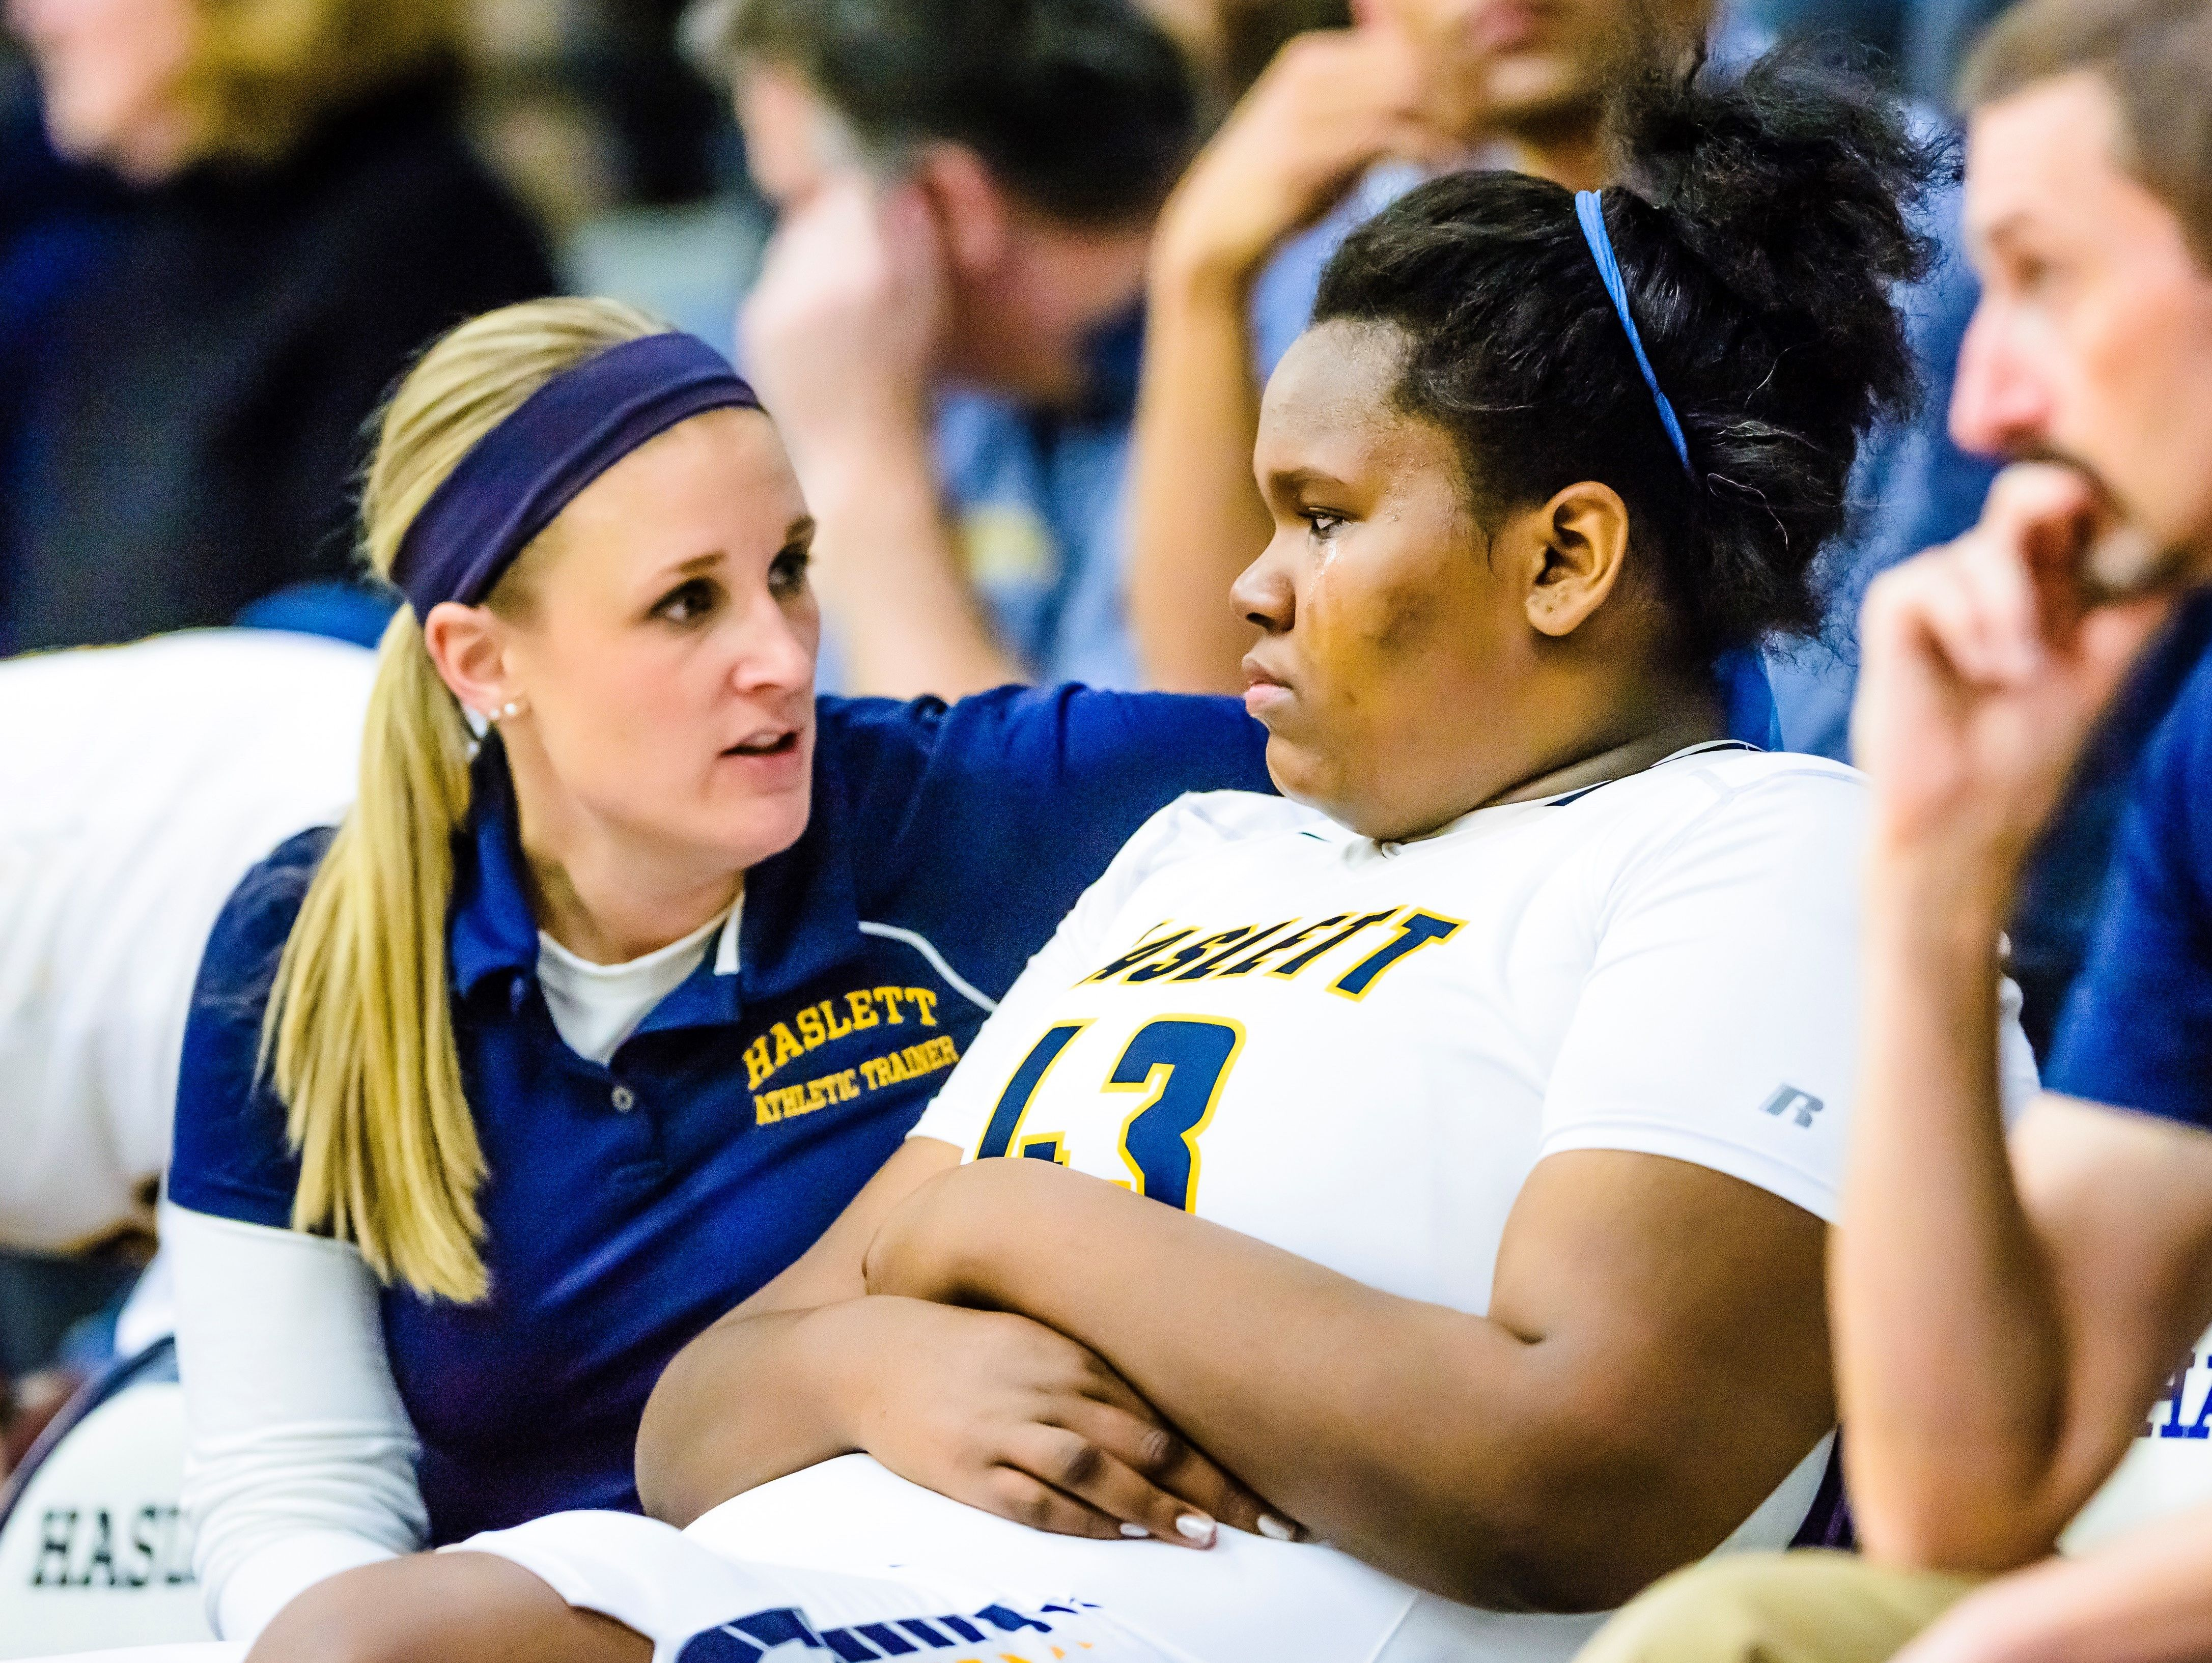 Imania Baker ,center, of Haslett sheds a tear as a Haslett athletic trainer discusses her head injury with her at halftime of the DeWitt/Haslett game Friday February 17, 2017 in Haslett. Baker suffered a head injury in the 1st quarter and after a brief reappearance in the 2nd quarter, left the game not to return.